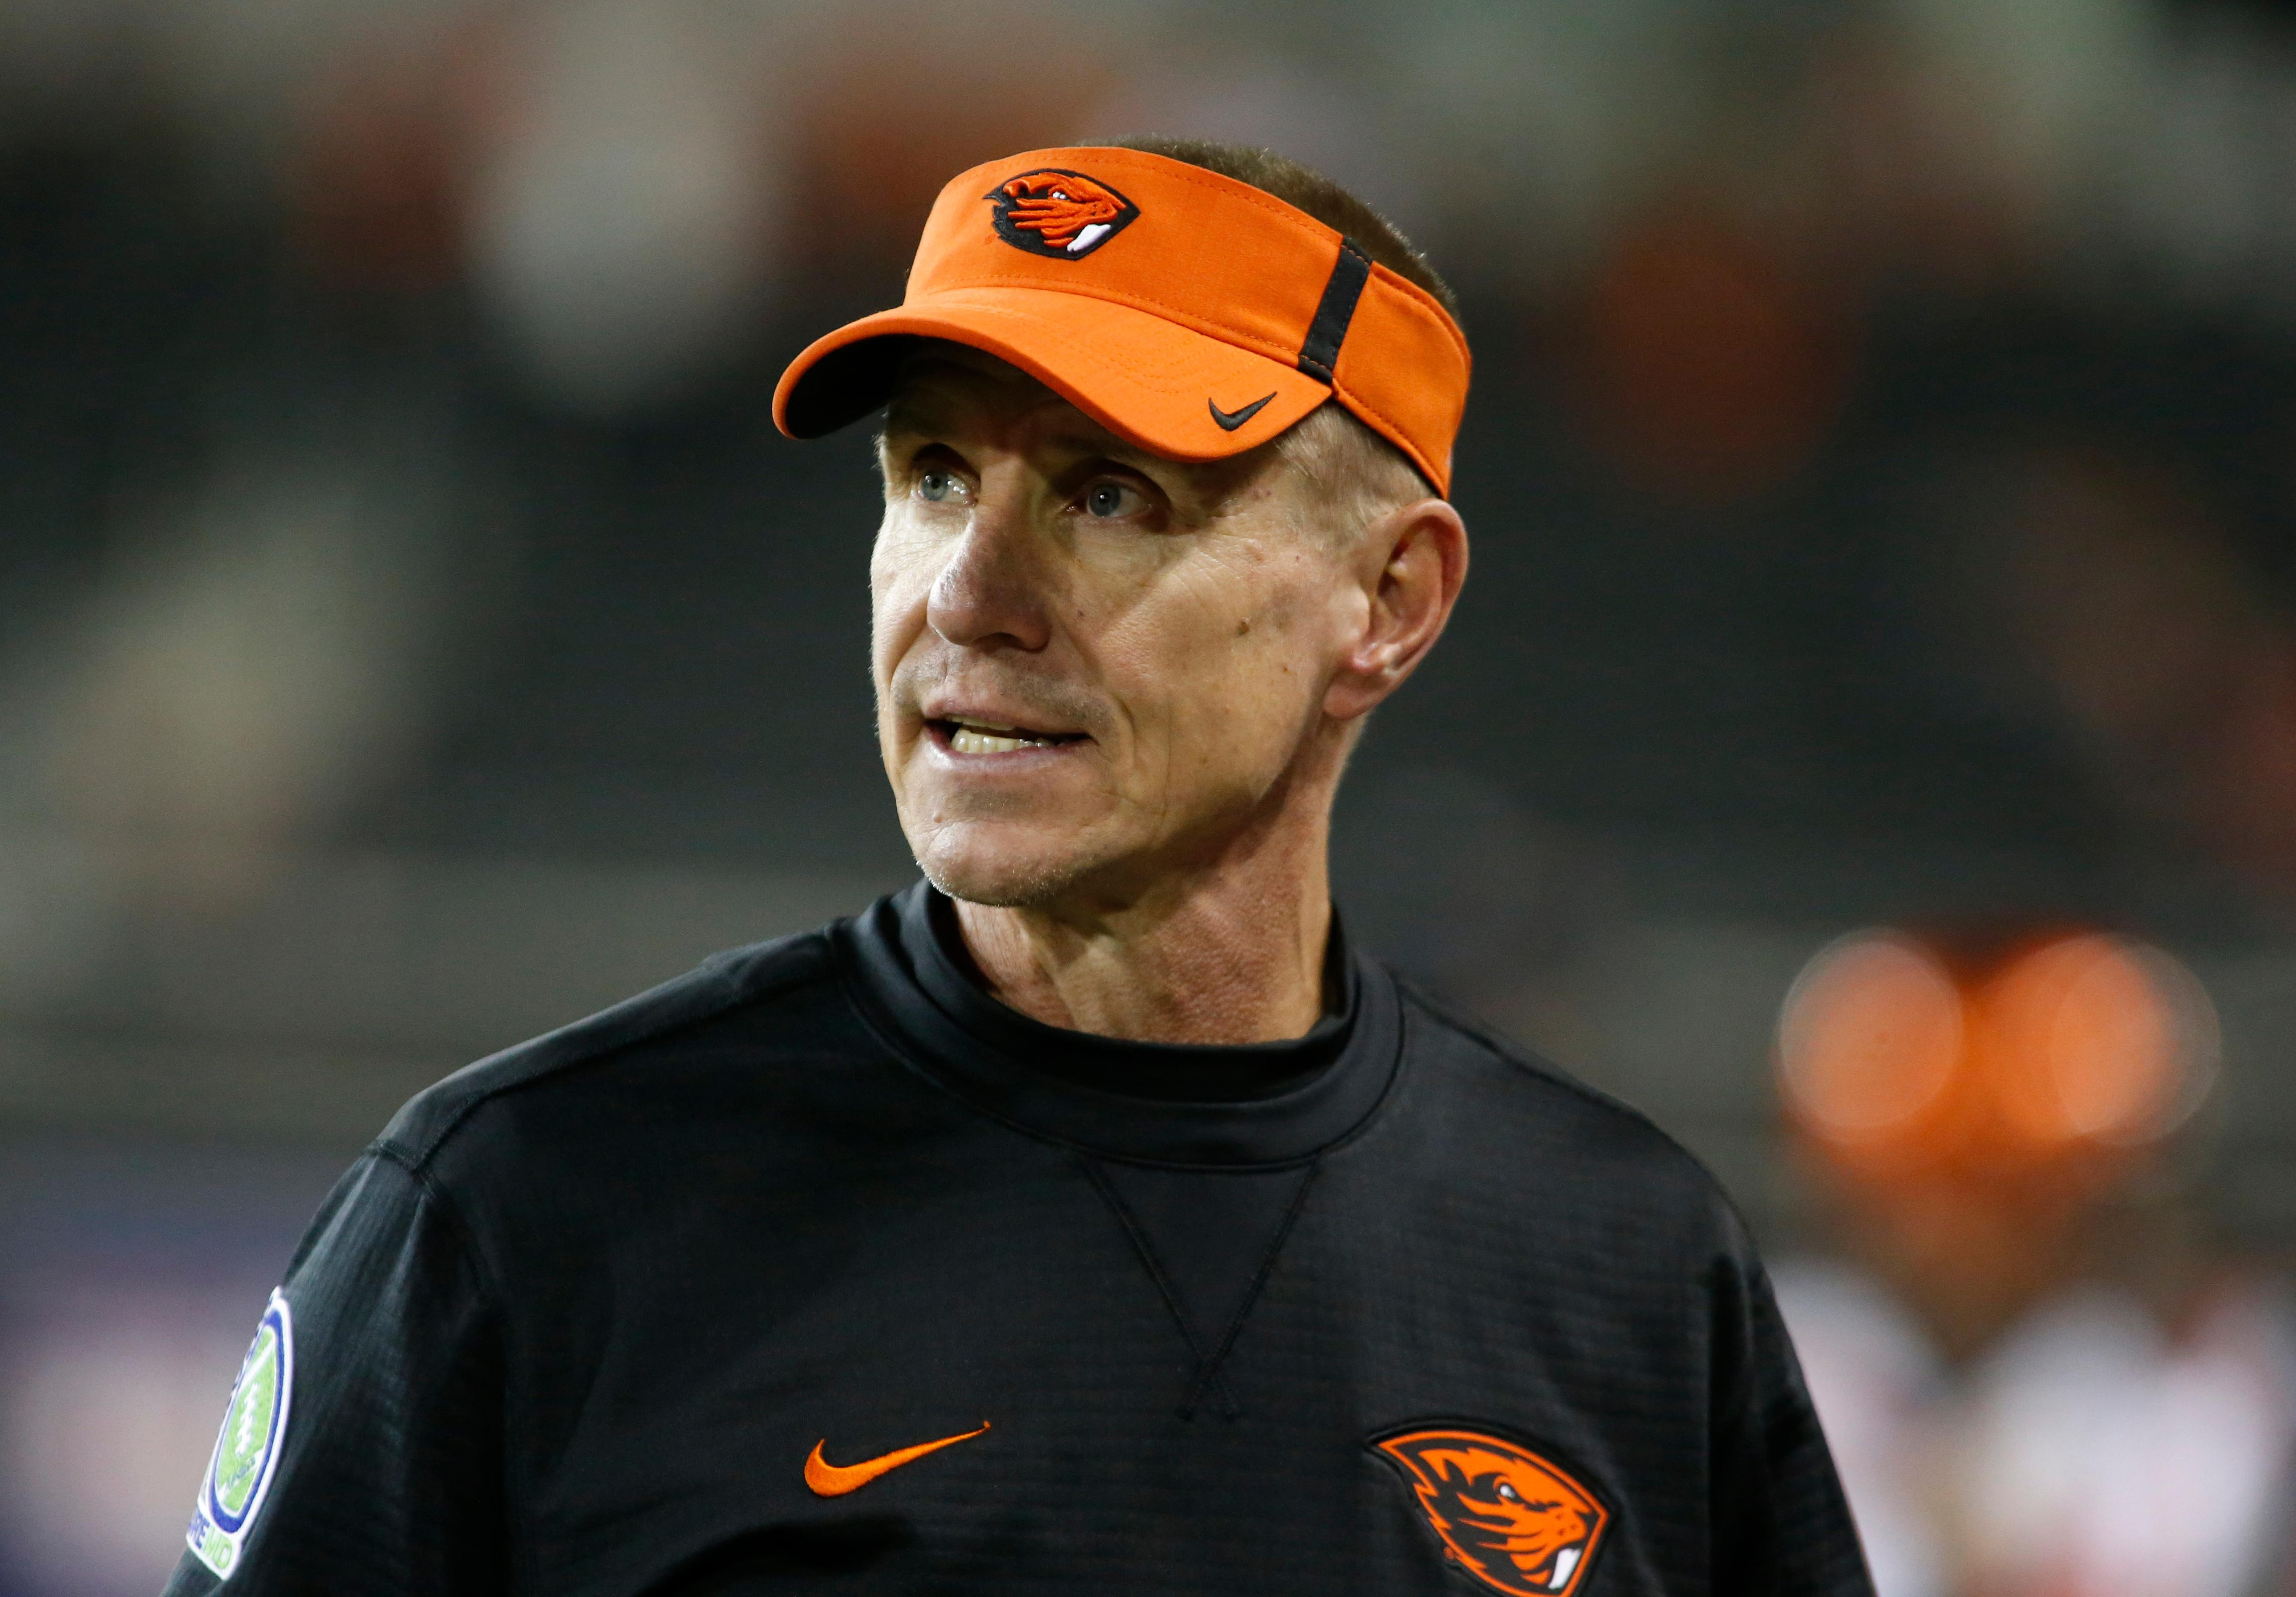 FILE - In this Sept., 30, 2017, file photo, Oregon State head coach Gary Andersen watches from the sidelines during an NCAA college football game against Washington, in Corvallis, Ore. Oregon State and coach Gary Andersen have mutually agreed to part ways, effective immediately, with the Beavers off to a 1-5 start. The school announced the split in a news release Monday, Oct. 9, 2017, two days after a 38-10 loss at Southern California.  (AP Photo/Timothy J. Gonzalez, File)